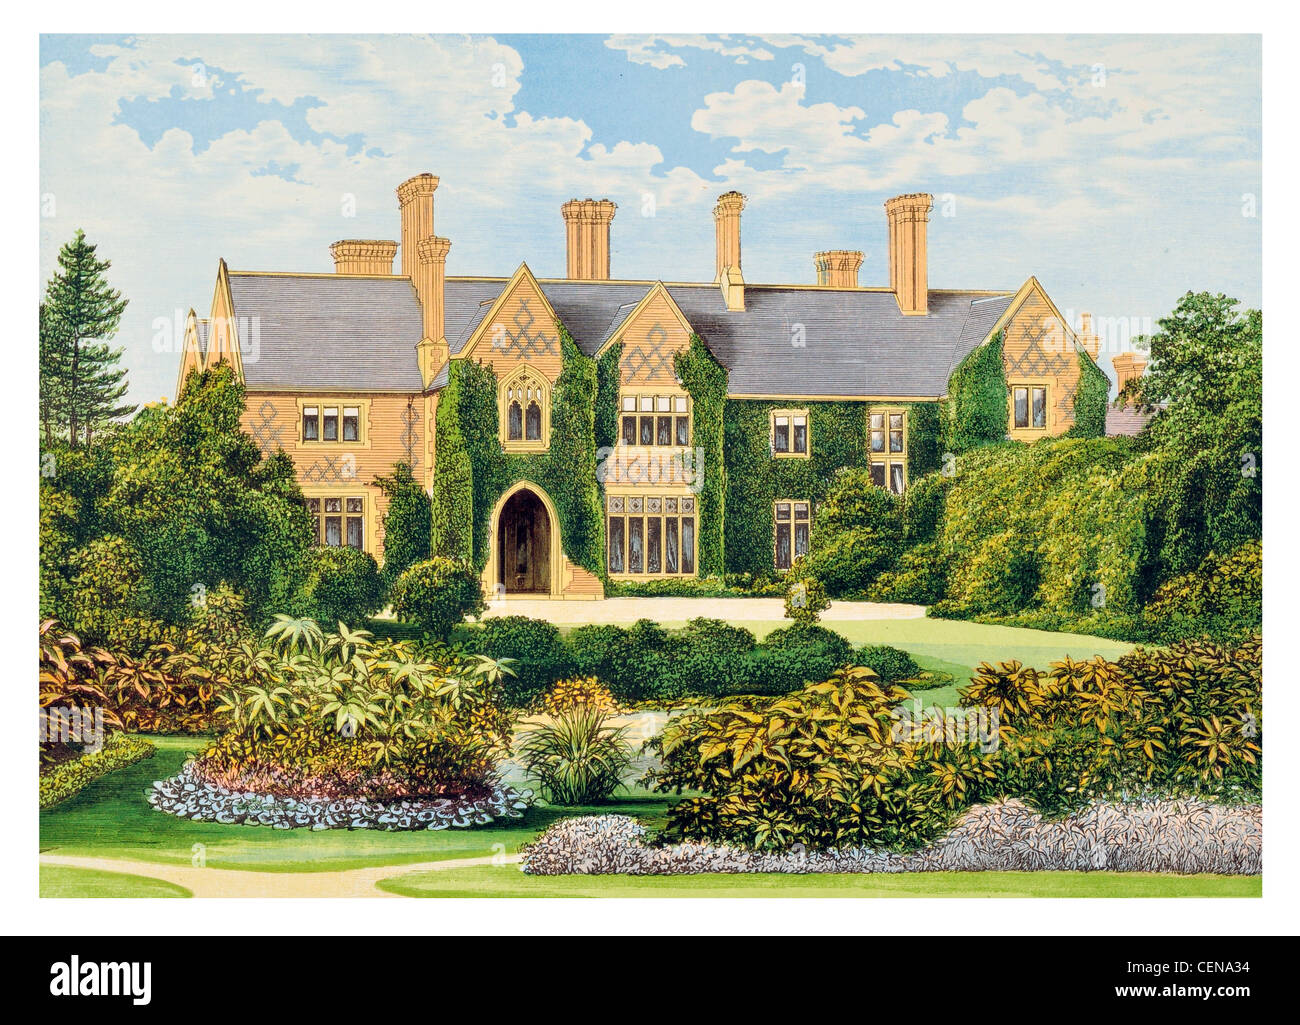 Oxley Manor Britain England UK Parkland Park Mansion House Stately Home Hall Palace Estate Castle Landscaped Garden